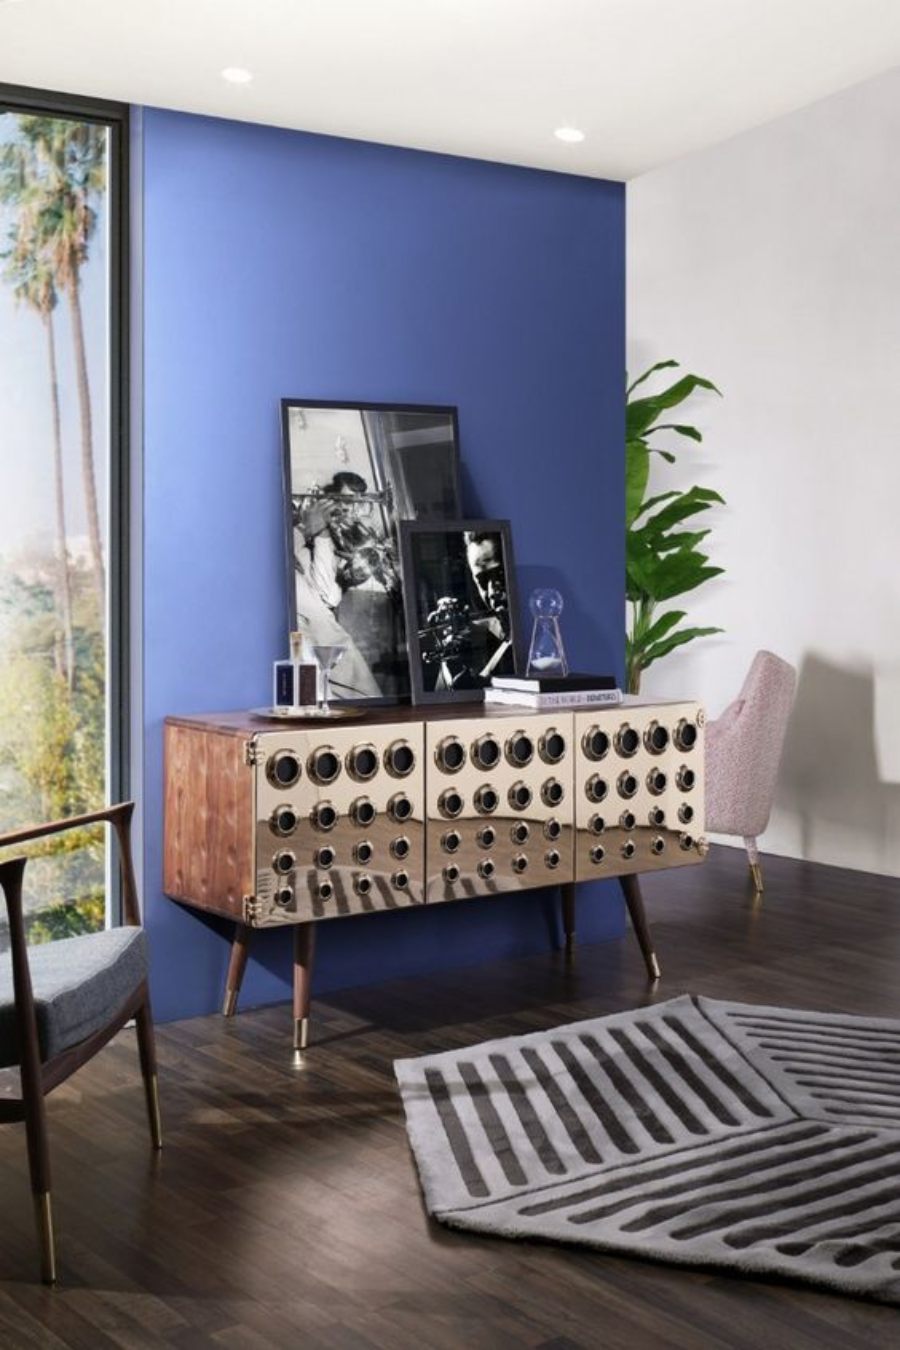 exclusive sideboards 10 Exclusive Sideboards That You Need On Your Next Interior Design Project canva photo editor 50 1